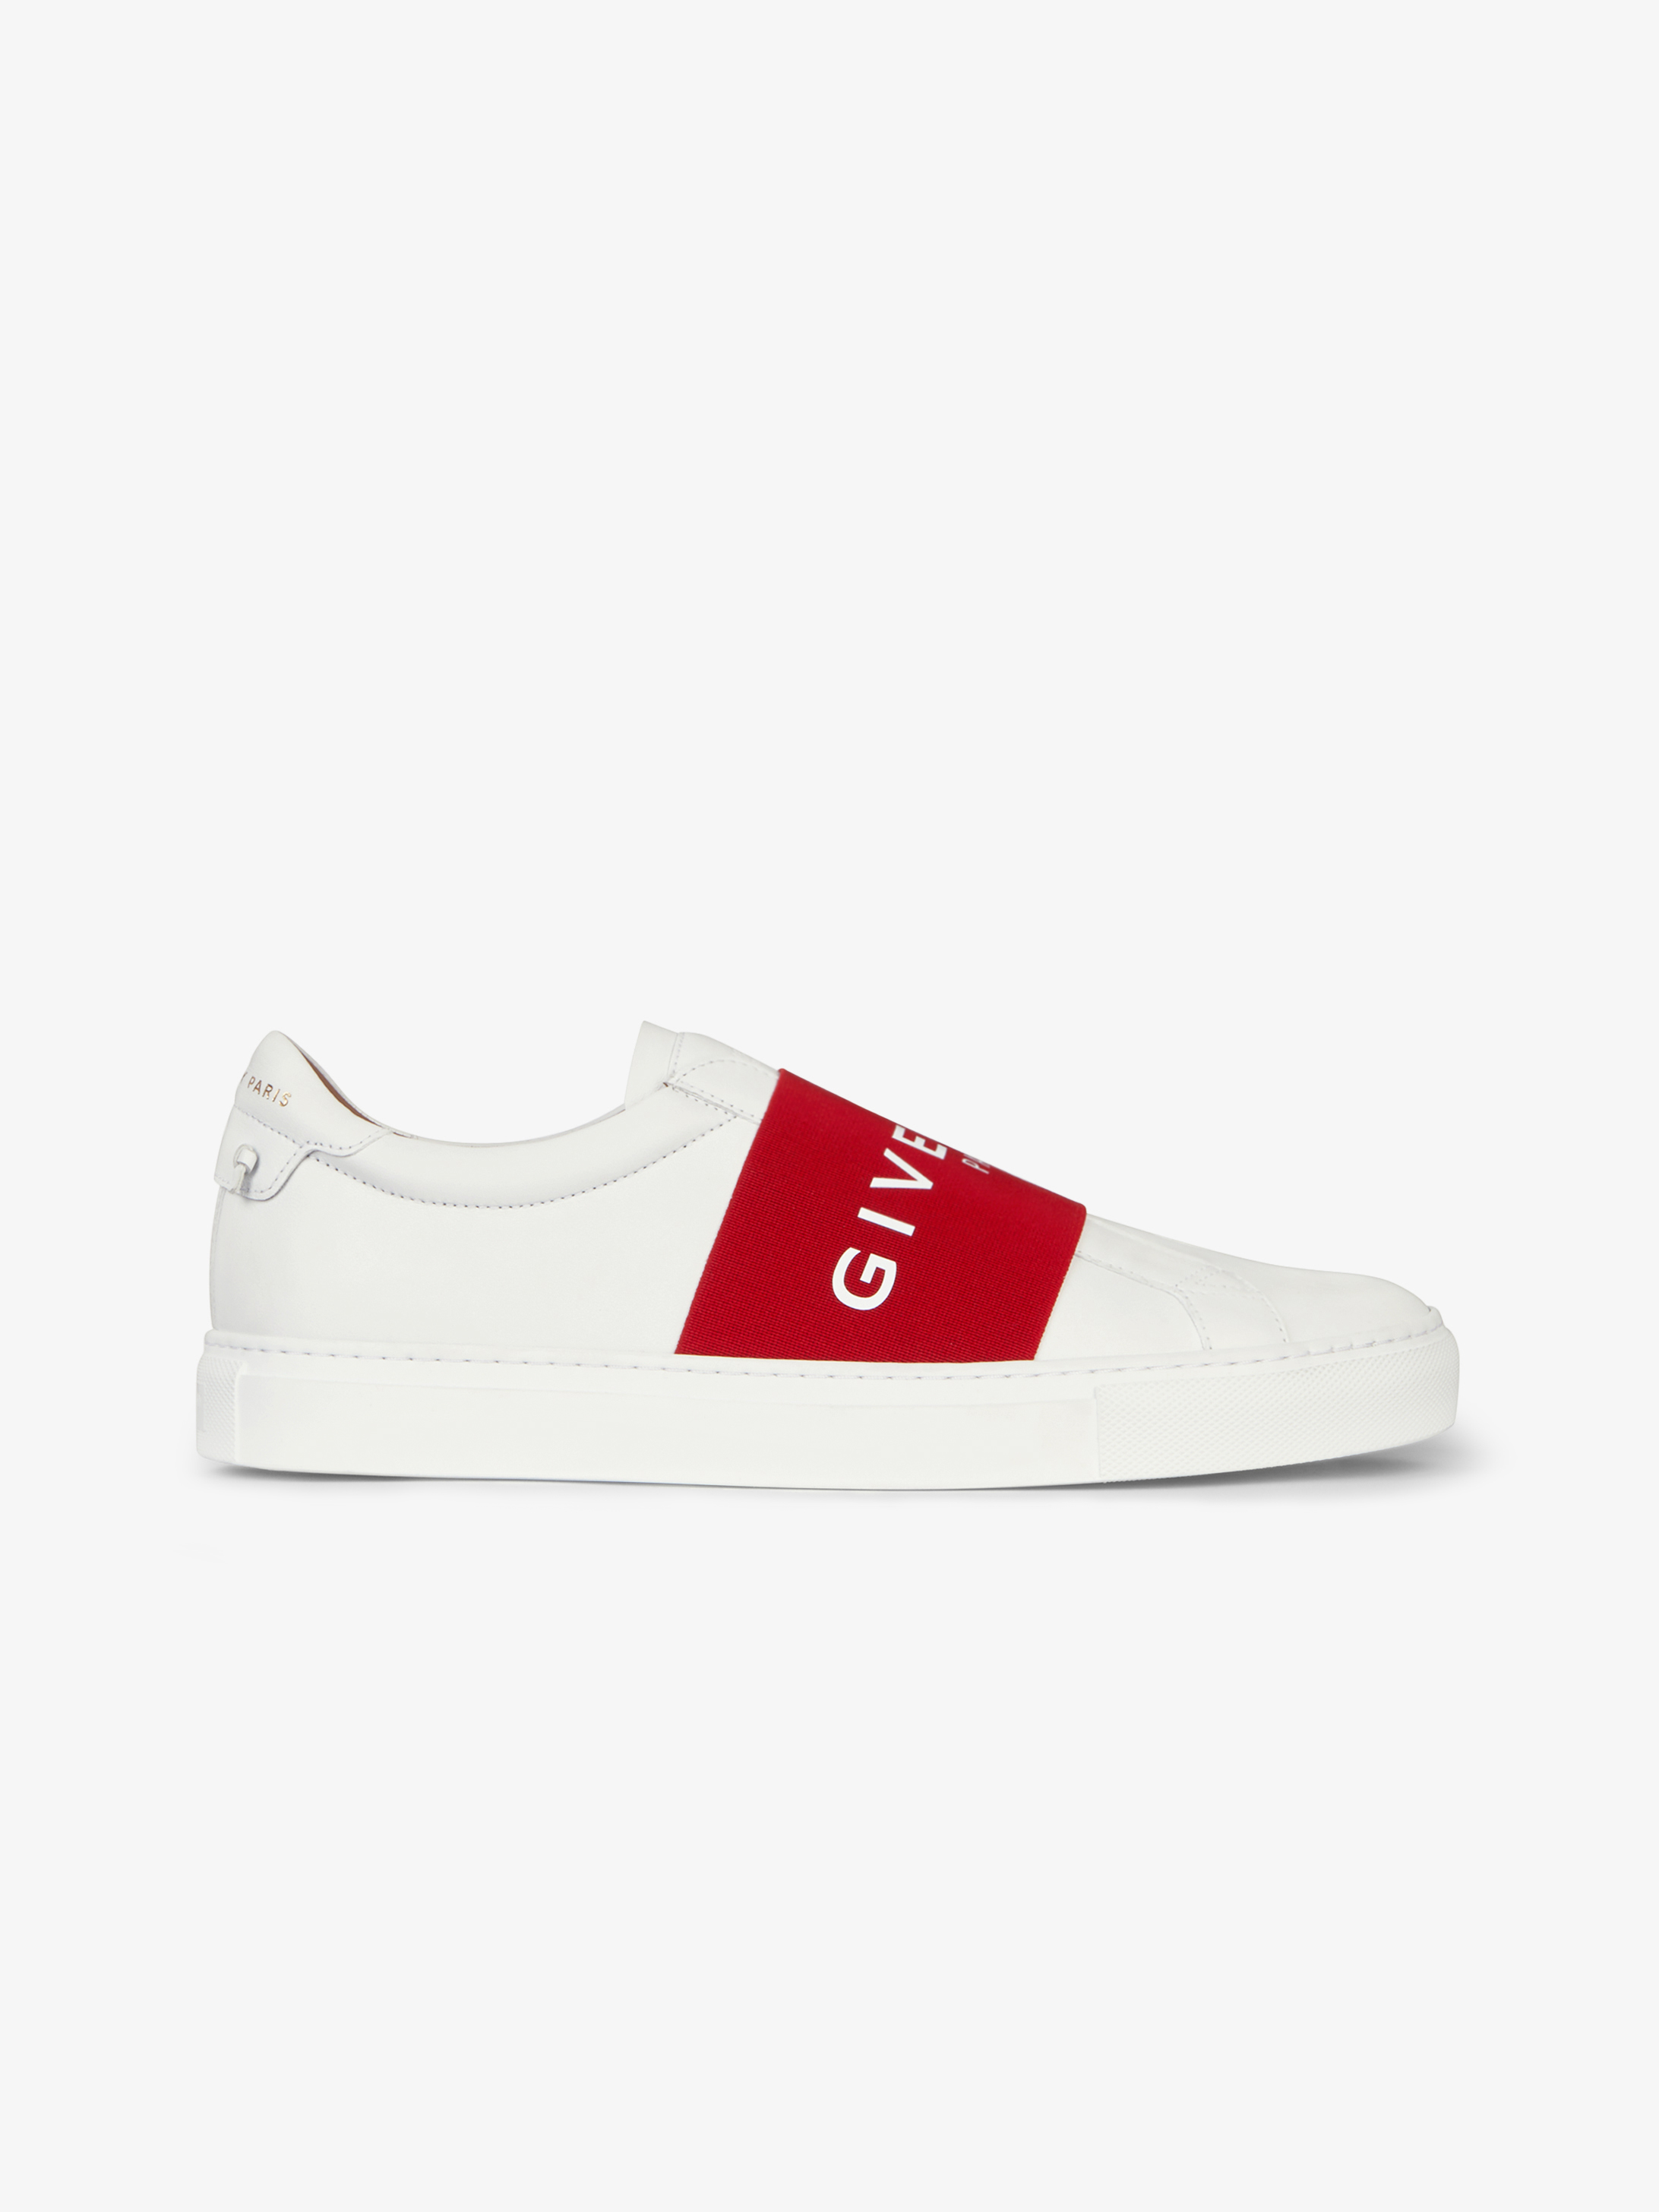 GIVENCHY PARIS webbing sneakers in leather